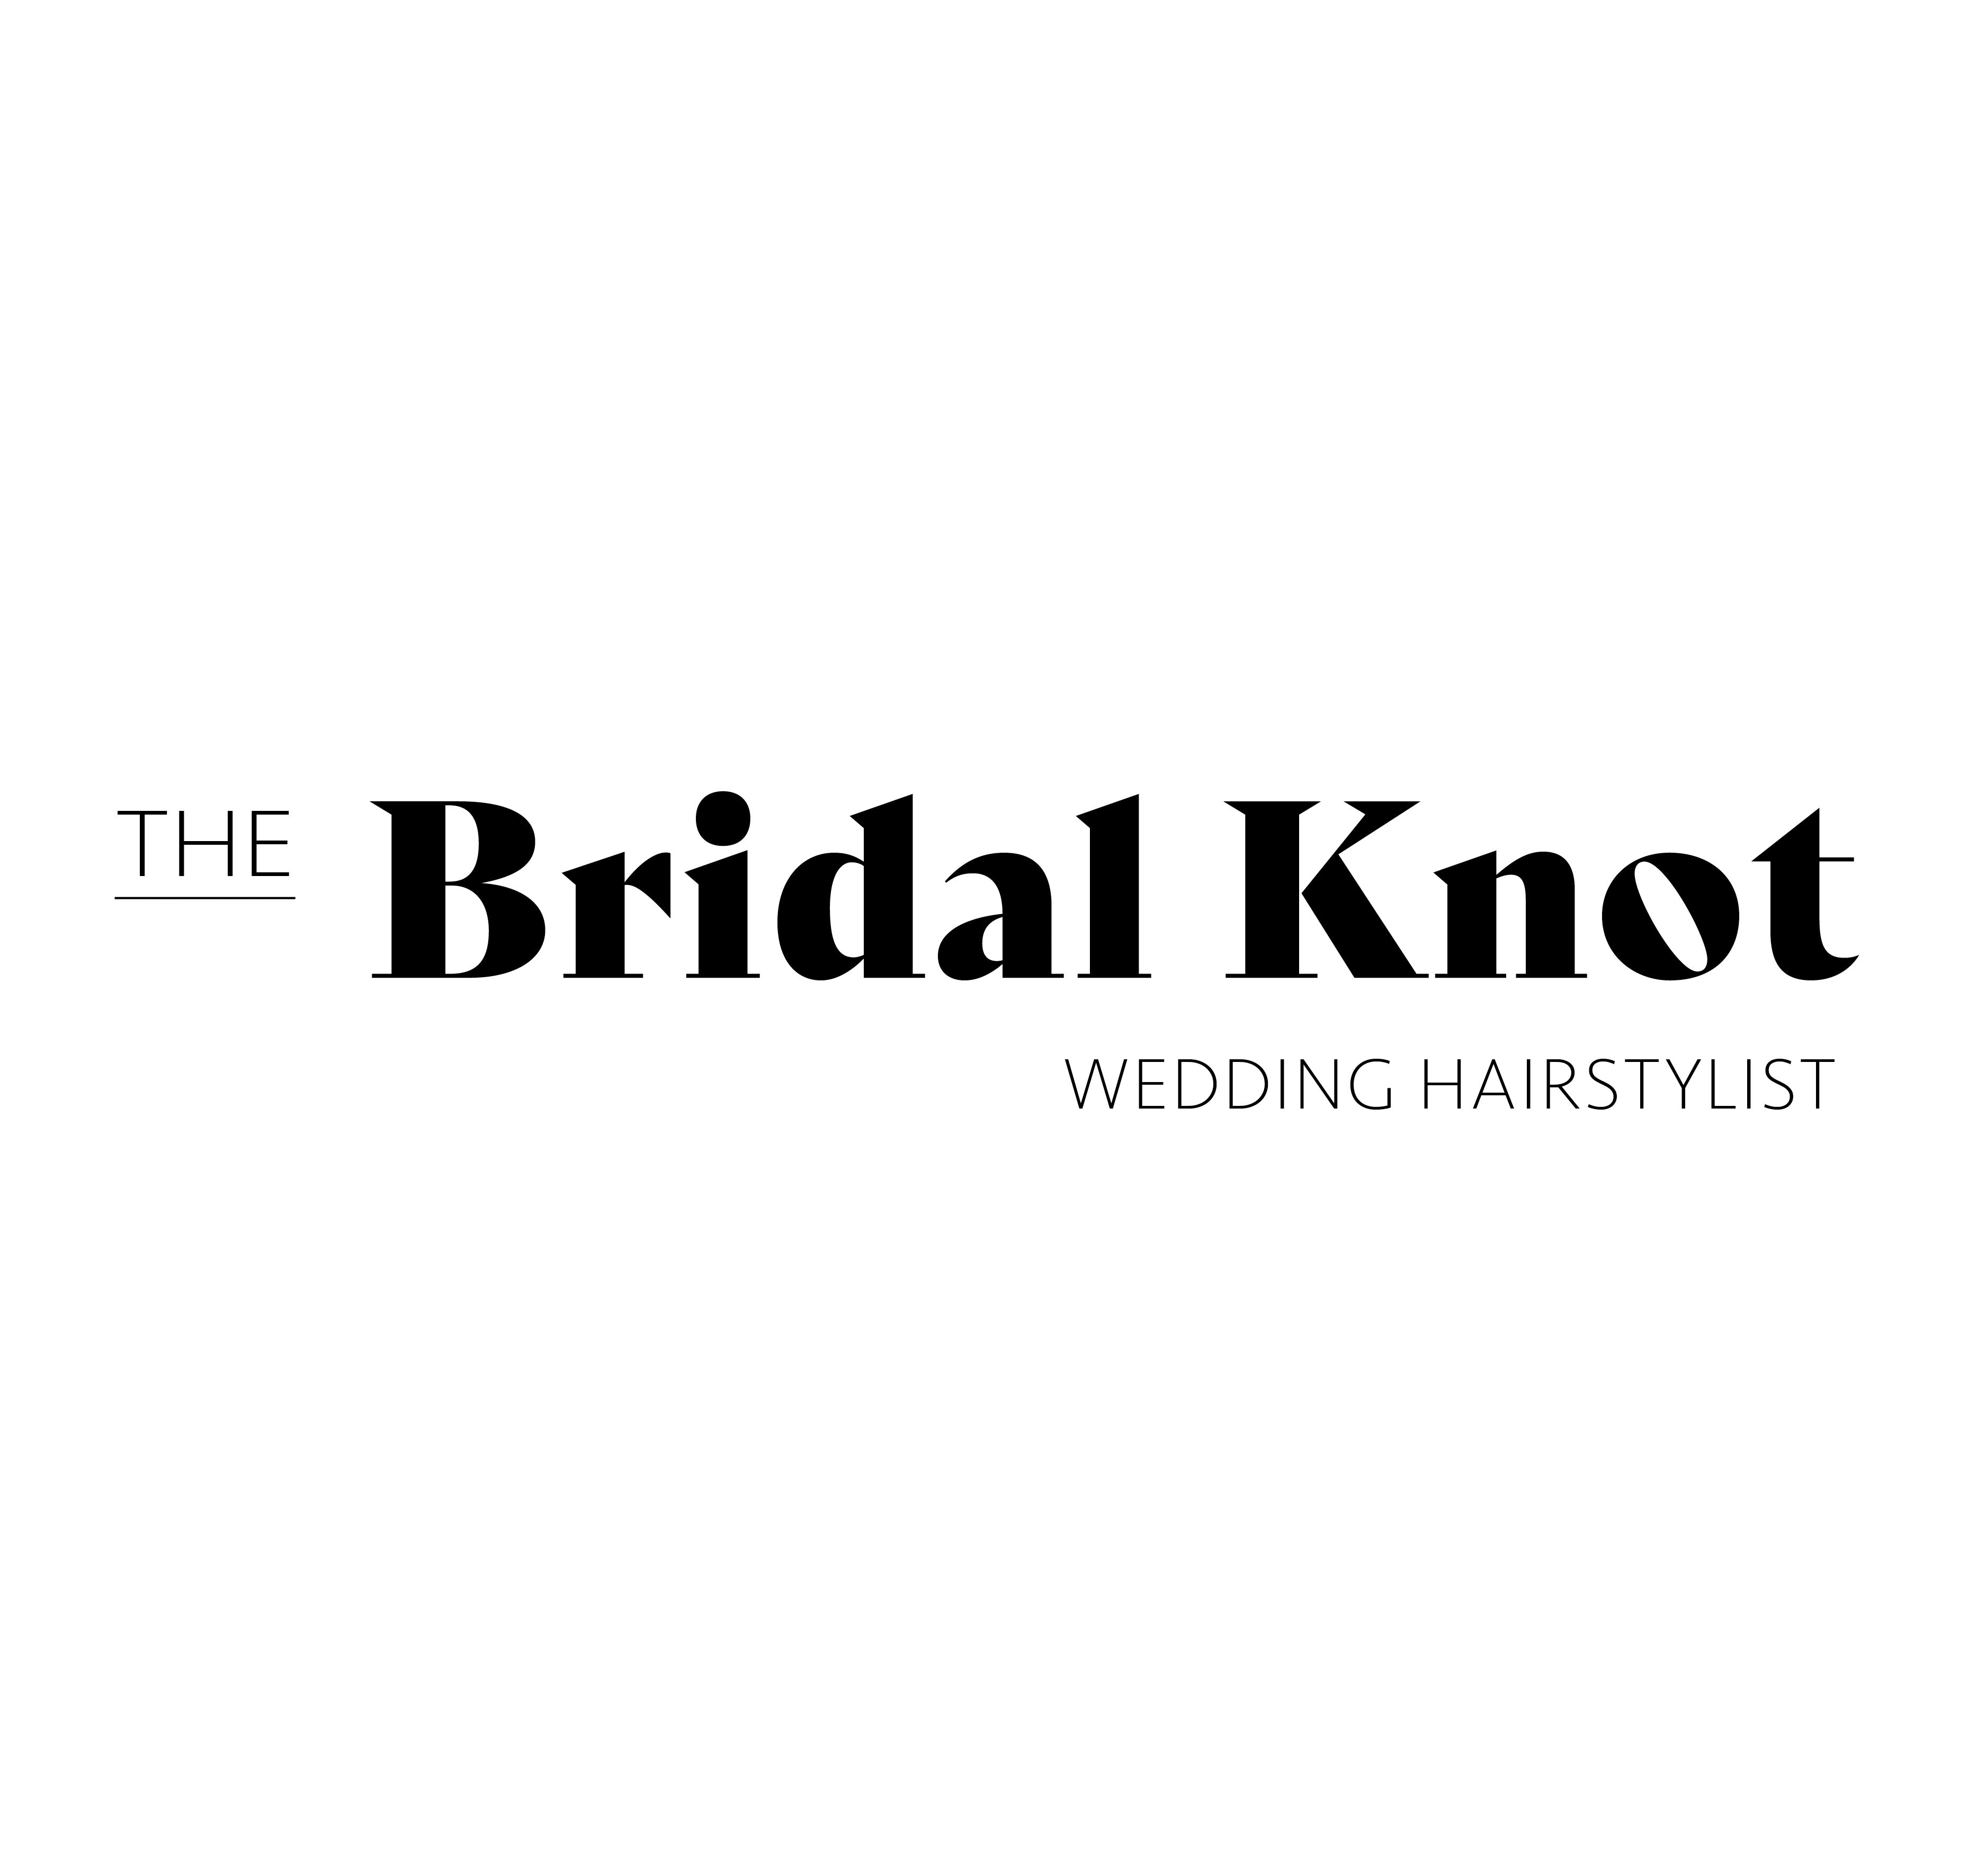 Tweed Coast Wedding Hairstylist